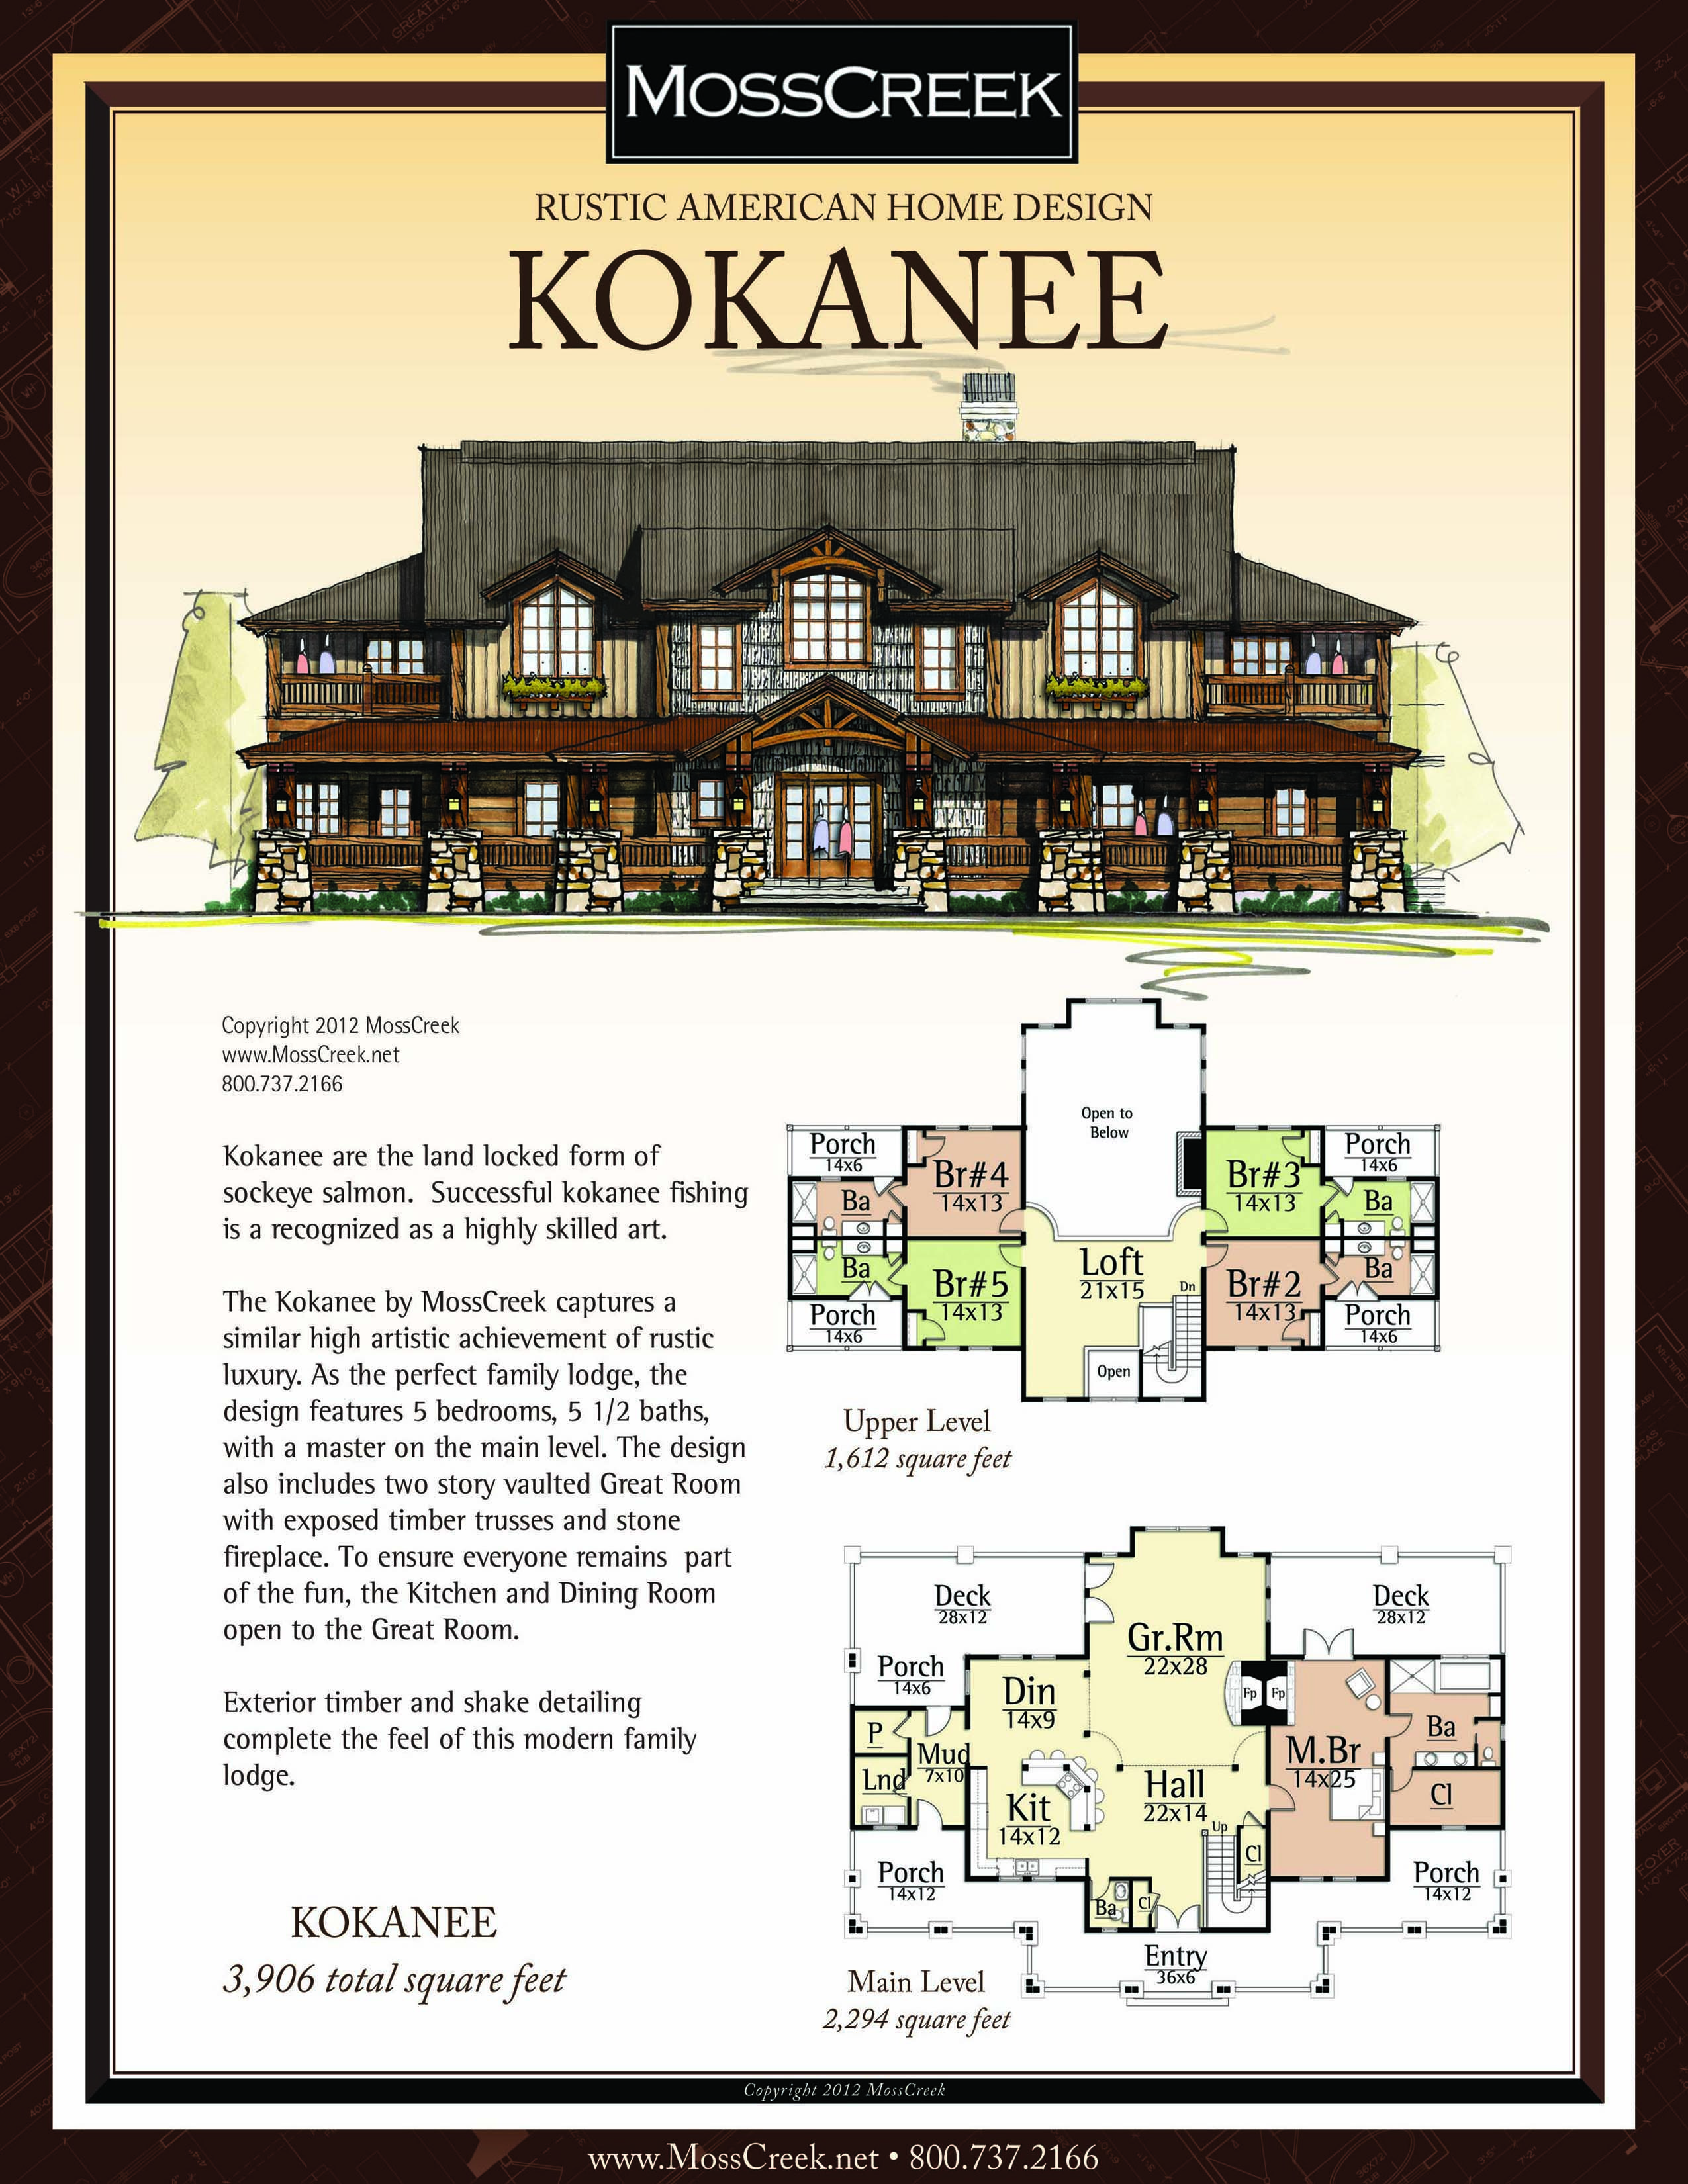 A Ready To Purchase 3906 Sf Home Plan From Mosscreek